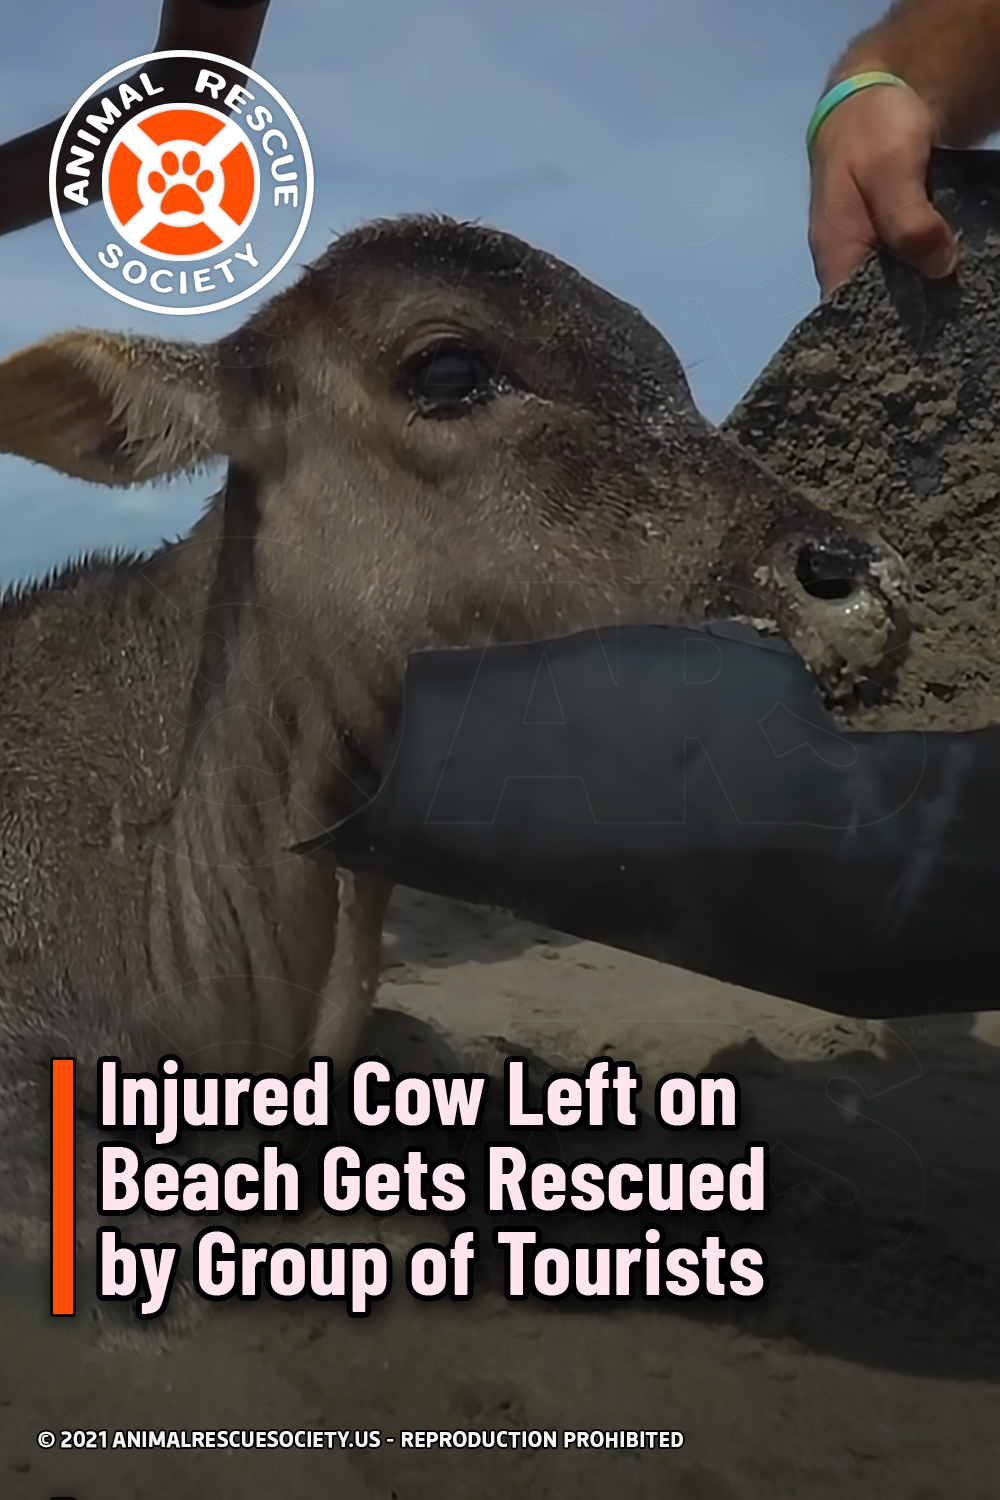 Injured Cow Left on Beach Gets Rescued by Group of Tourists